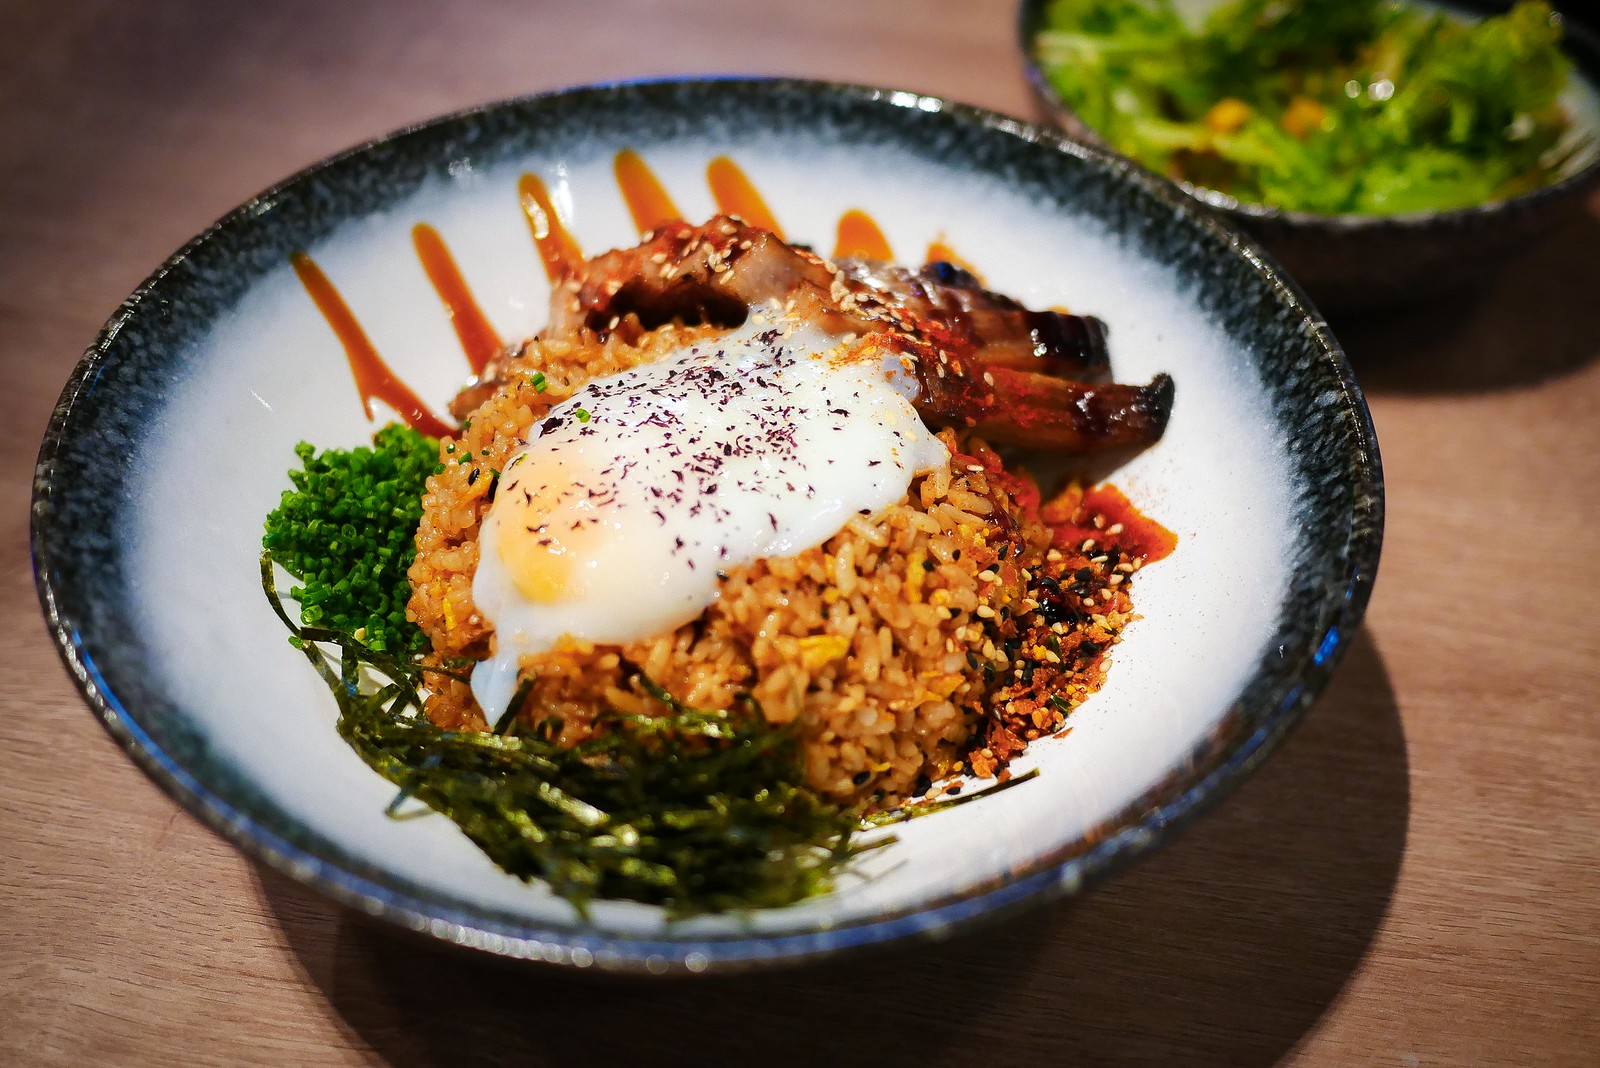 Pork Jowl Fried Rice